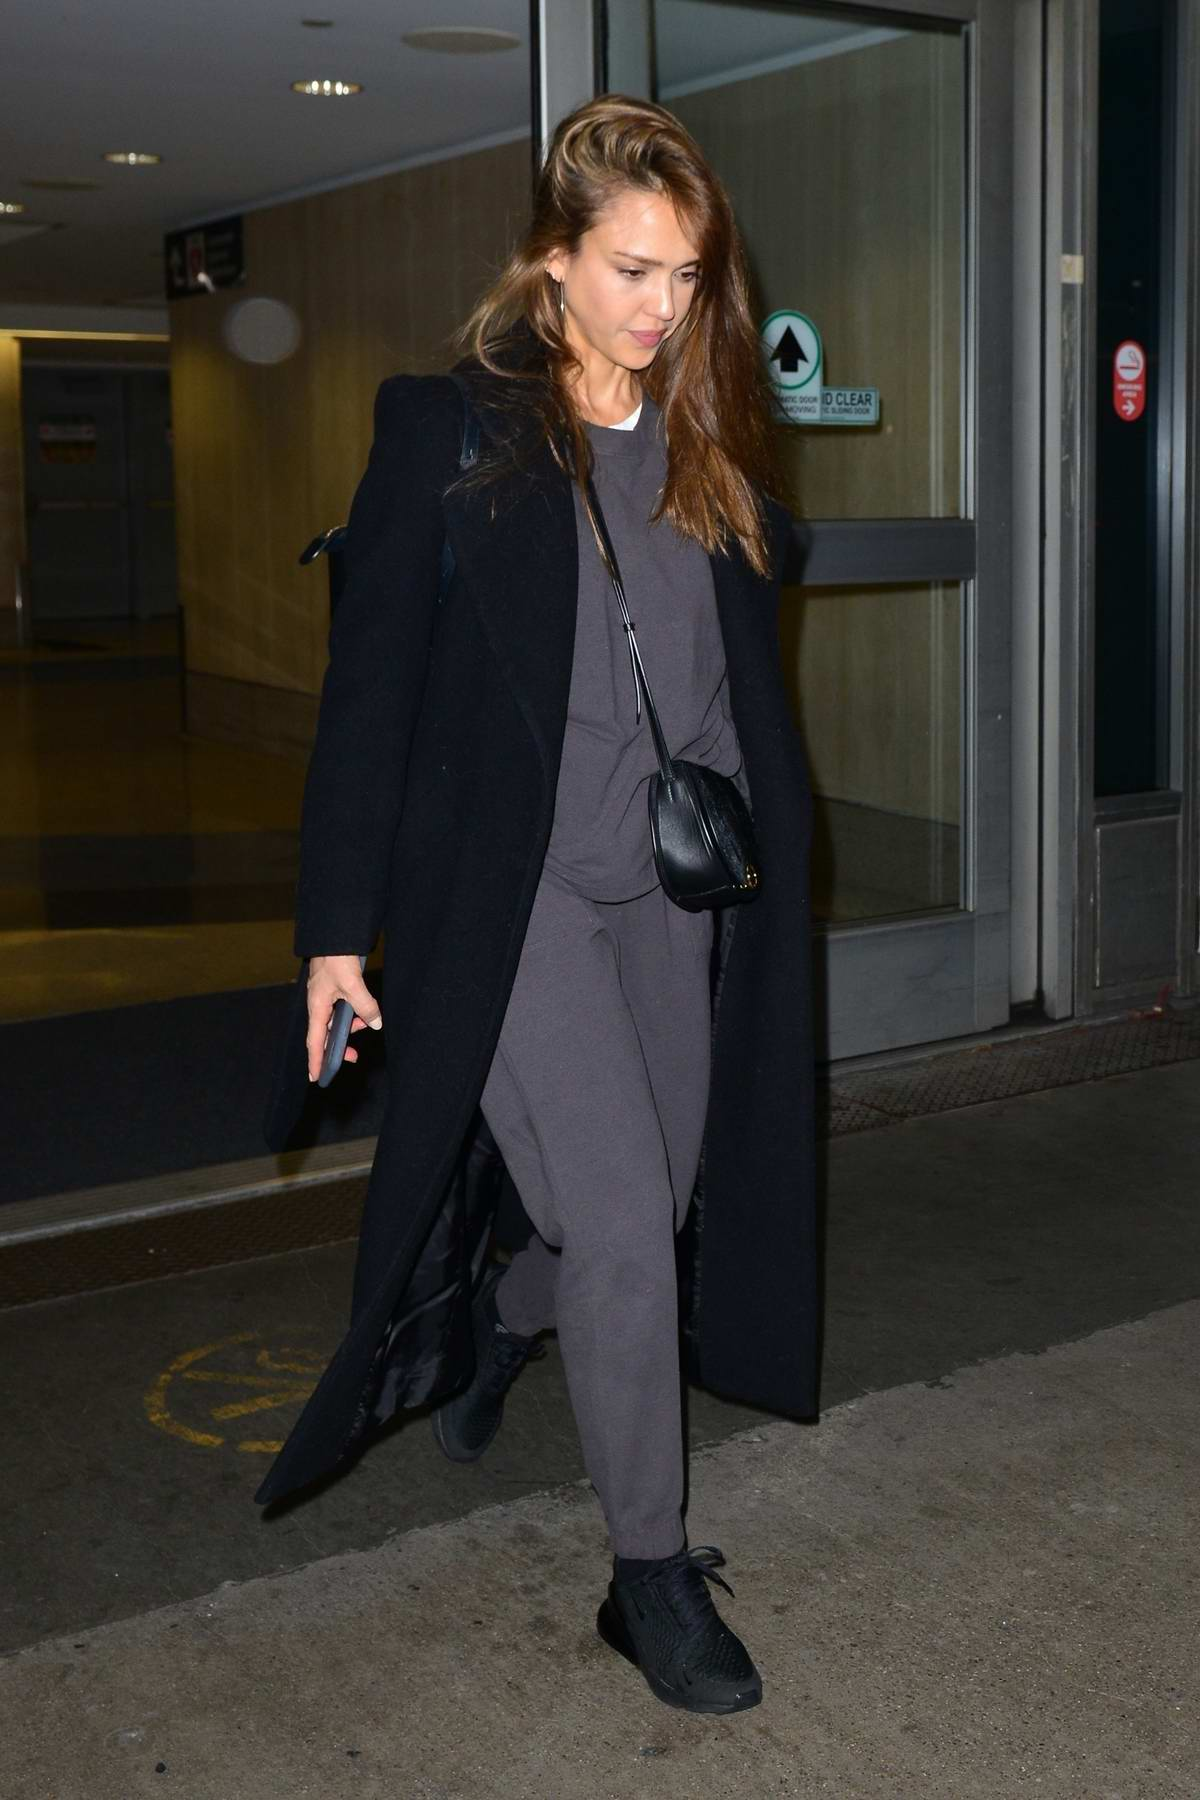 Jessica Alba jets in on a late flight as she makes her way through the LAX Airport in Los Angeles